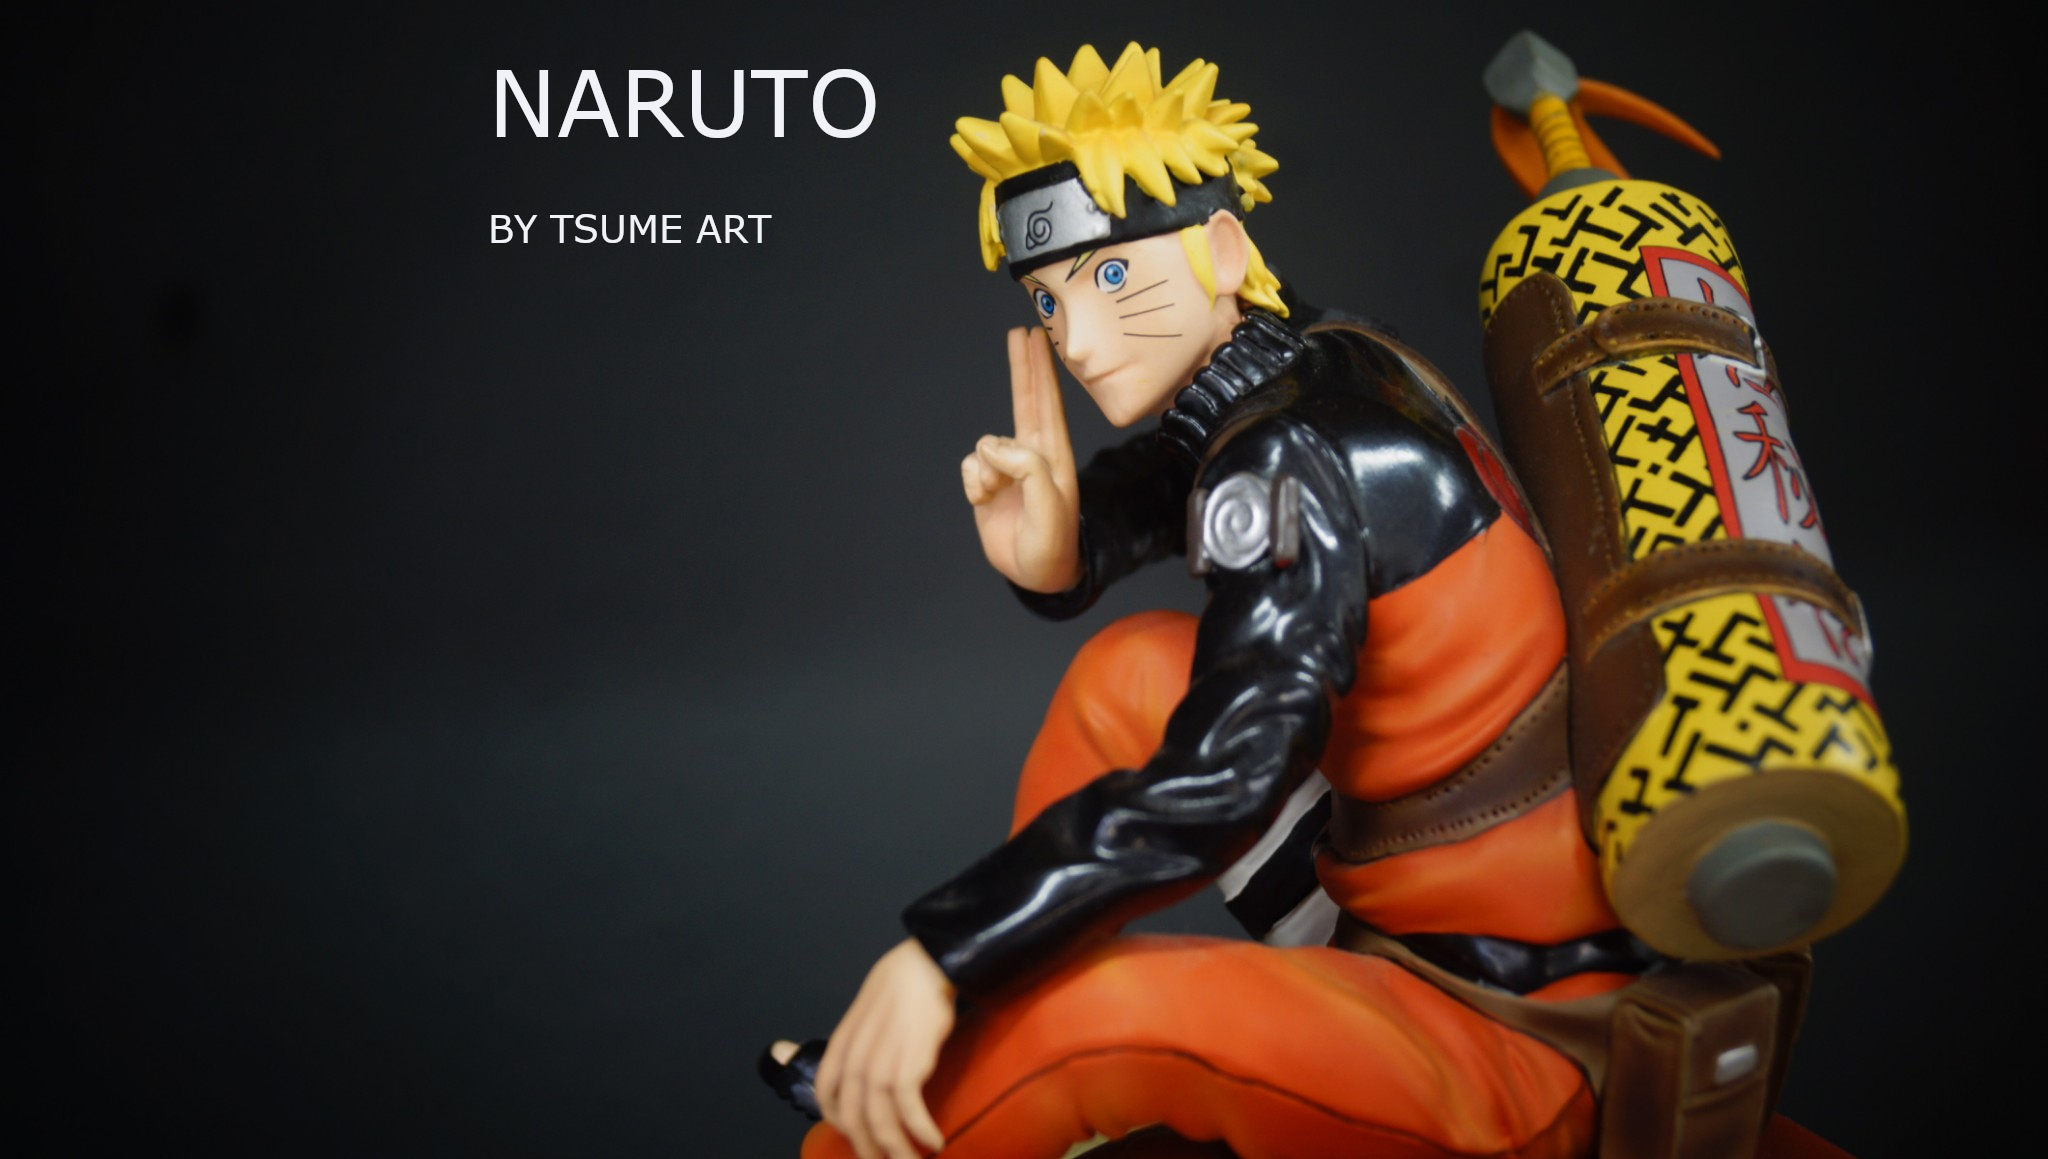 Reivew EP.18 NARUTO by Tsume Art : Naruto Uzumaki - Summon of Gamakichi